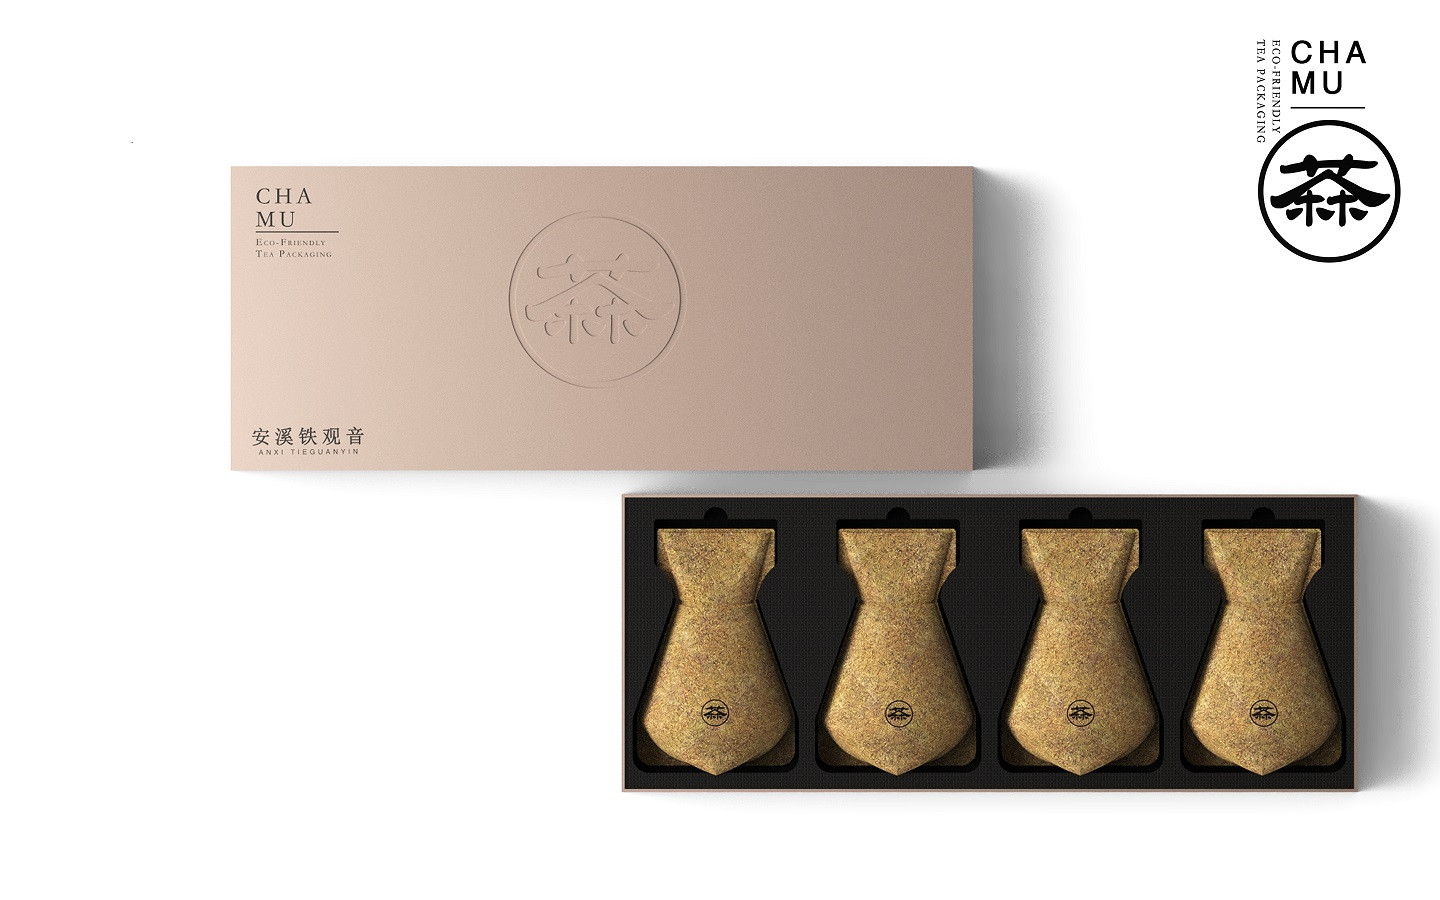 CHAMU Tea Packaging